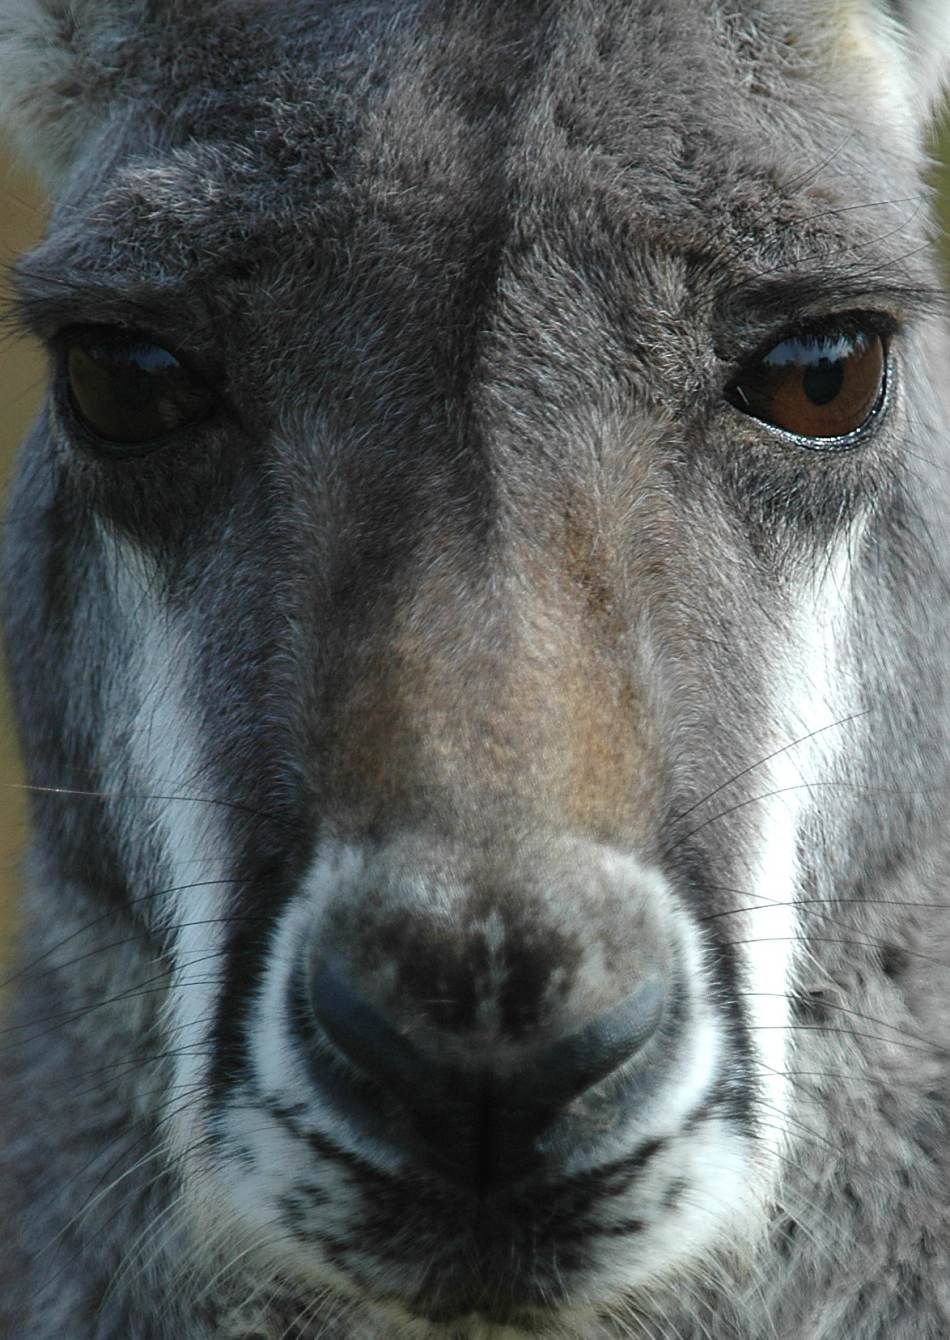 kangaroo extreme close-up